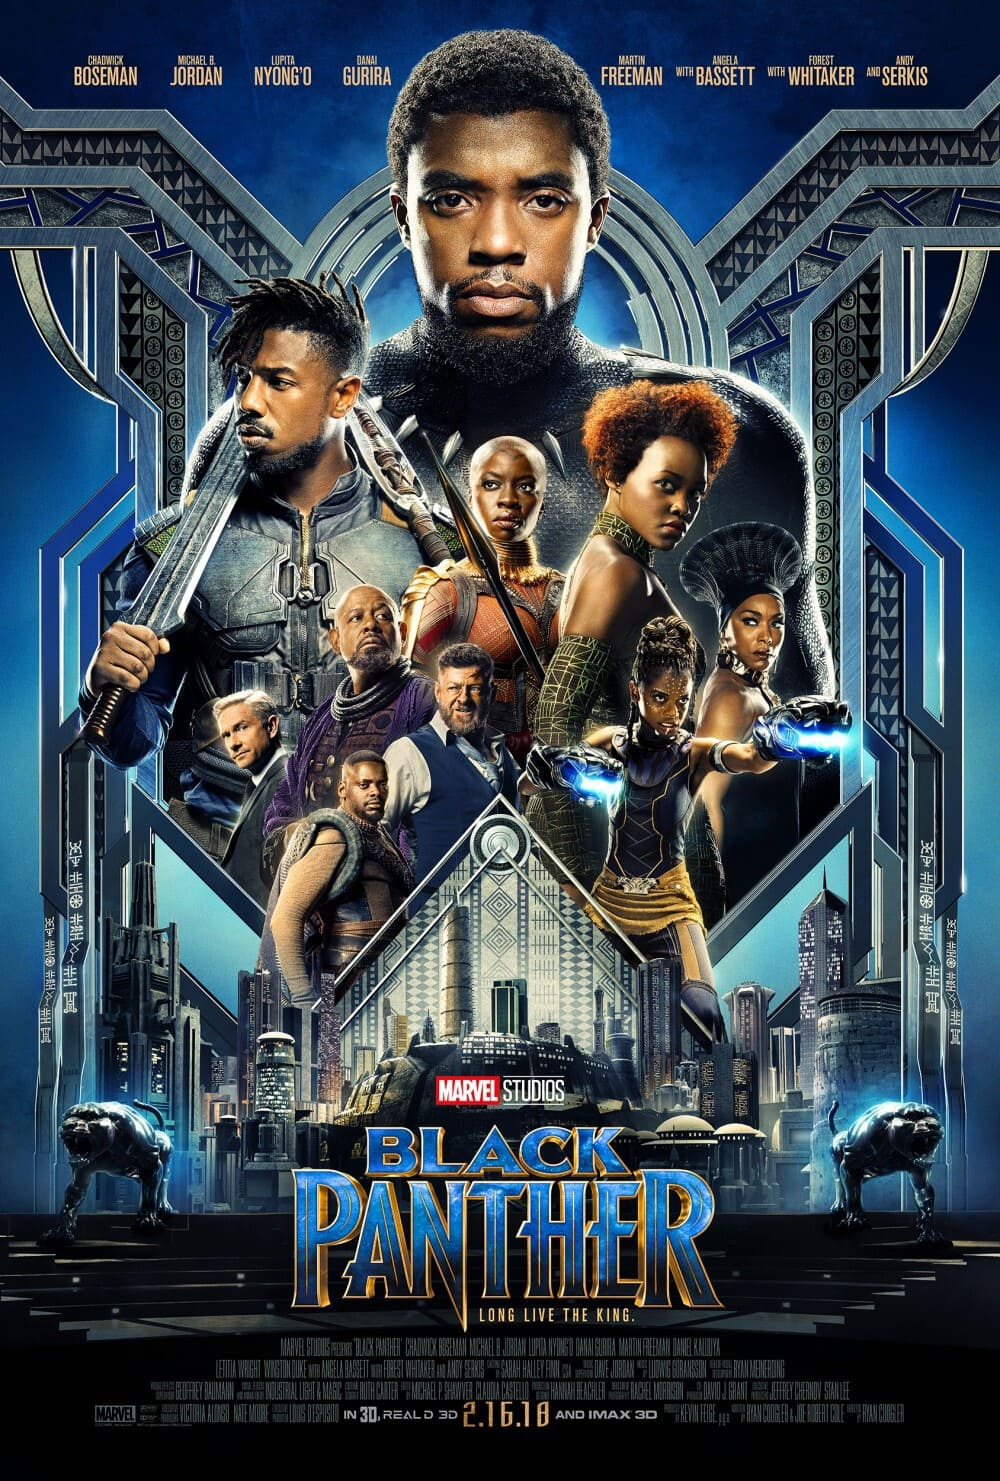 FIRST LOOK: New Poster for Marvel's Black Panther